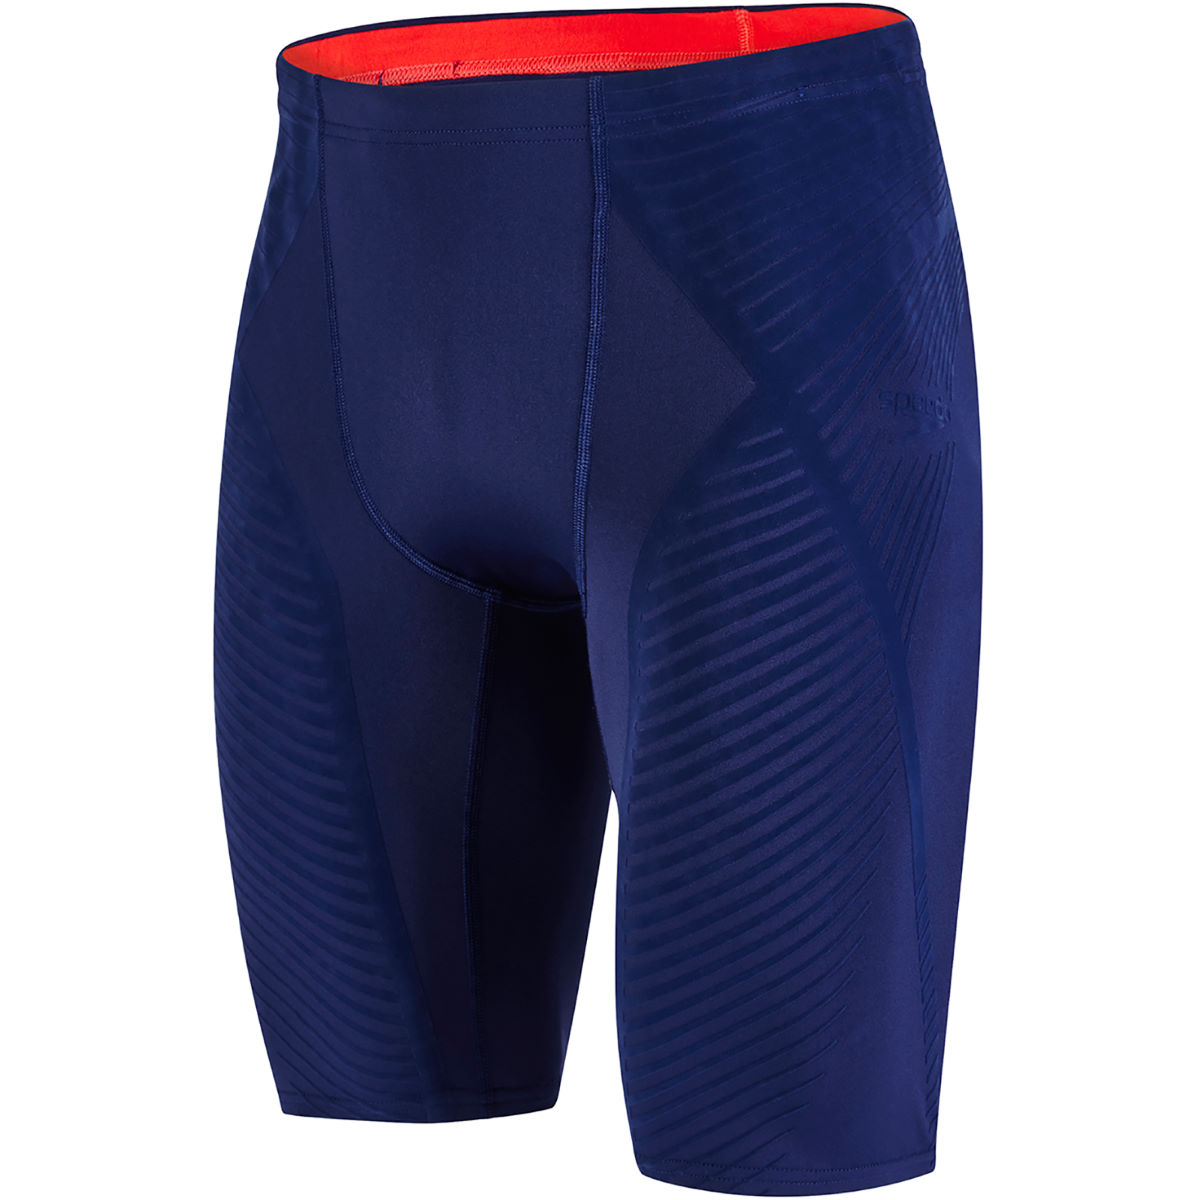 Jammer Speedo Fit Power Form - 32 Navy/Lava Red